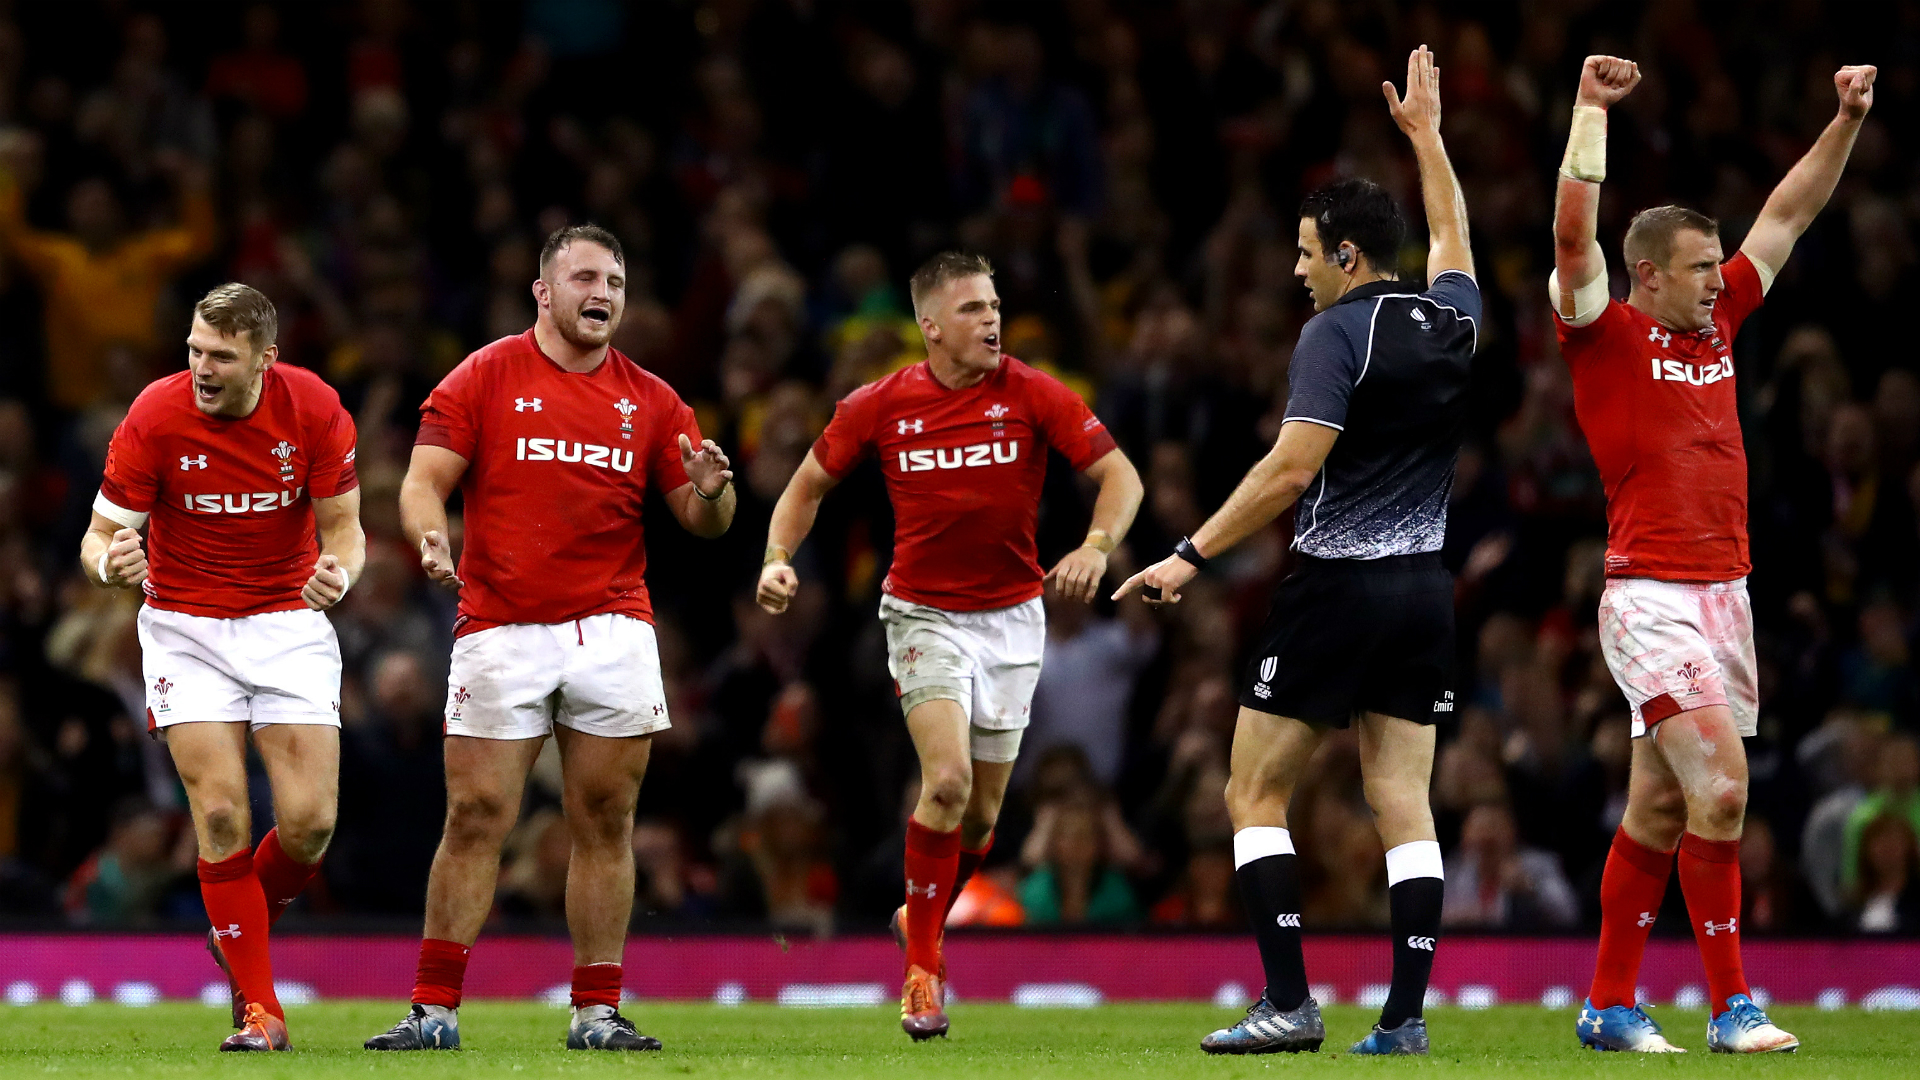 It shows how old I am! - Wyn Jones thrilled to end Wales' Wallabies drought